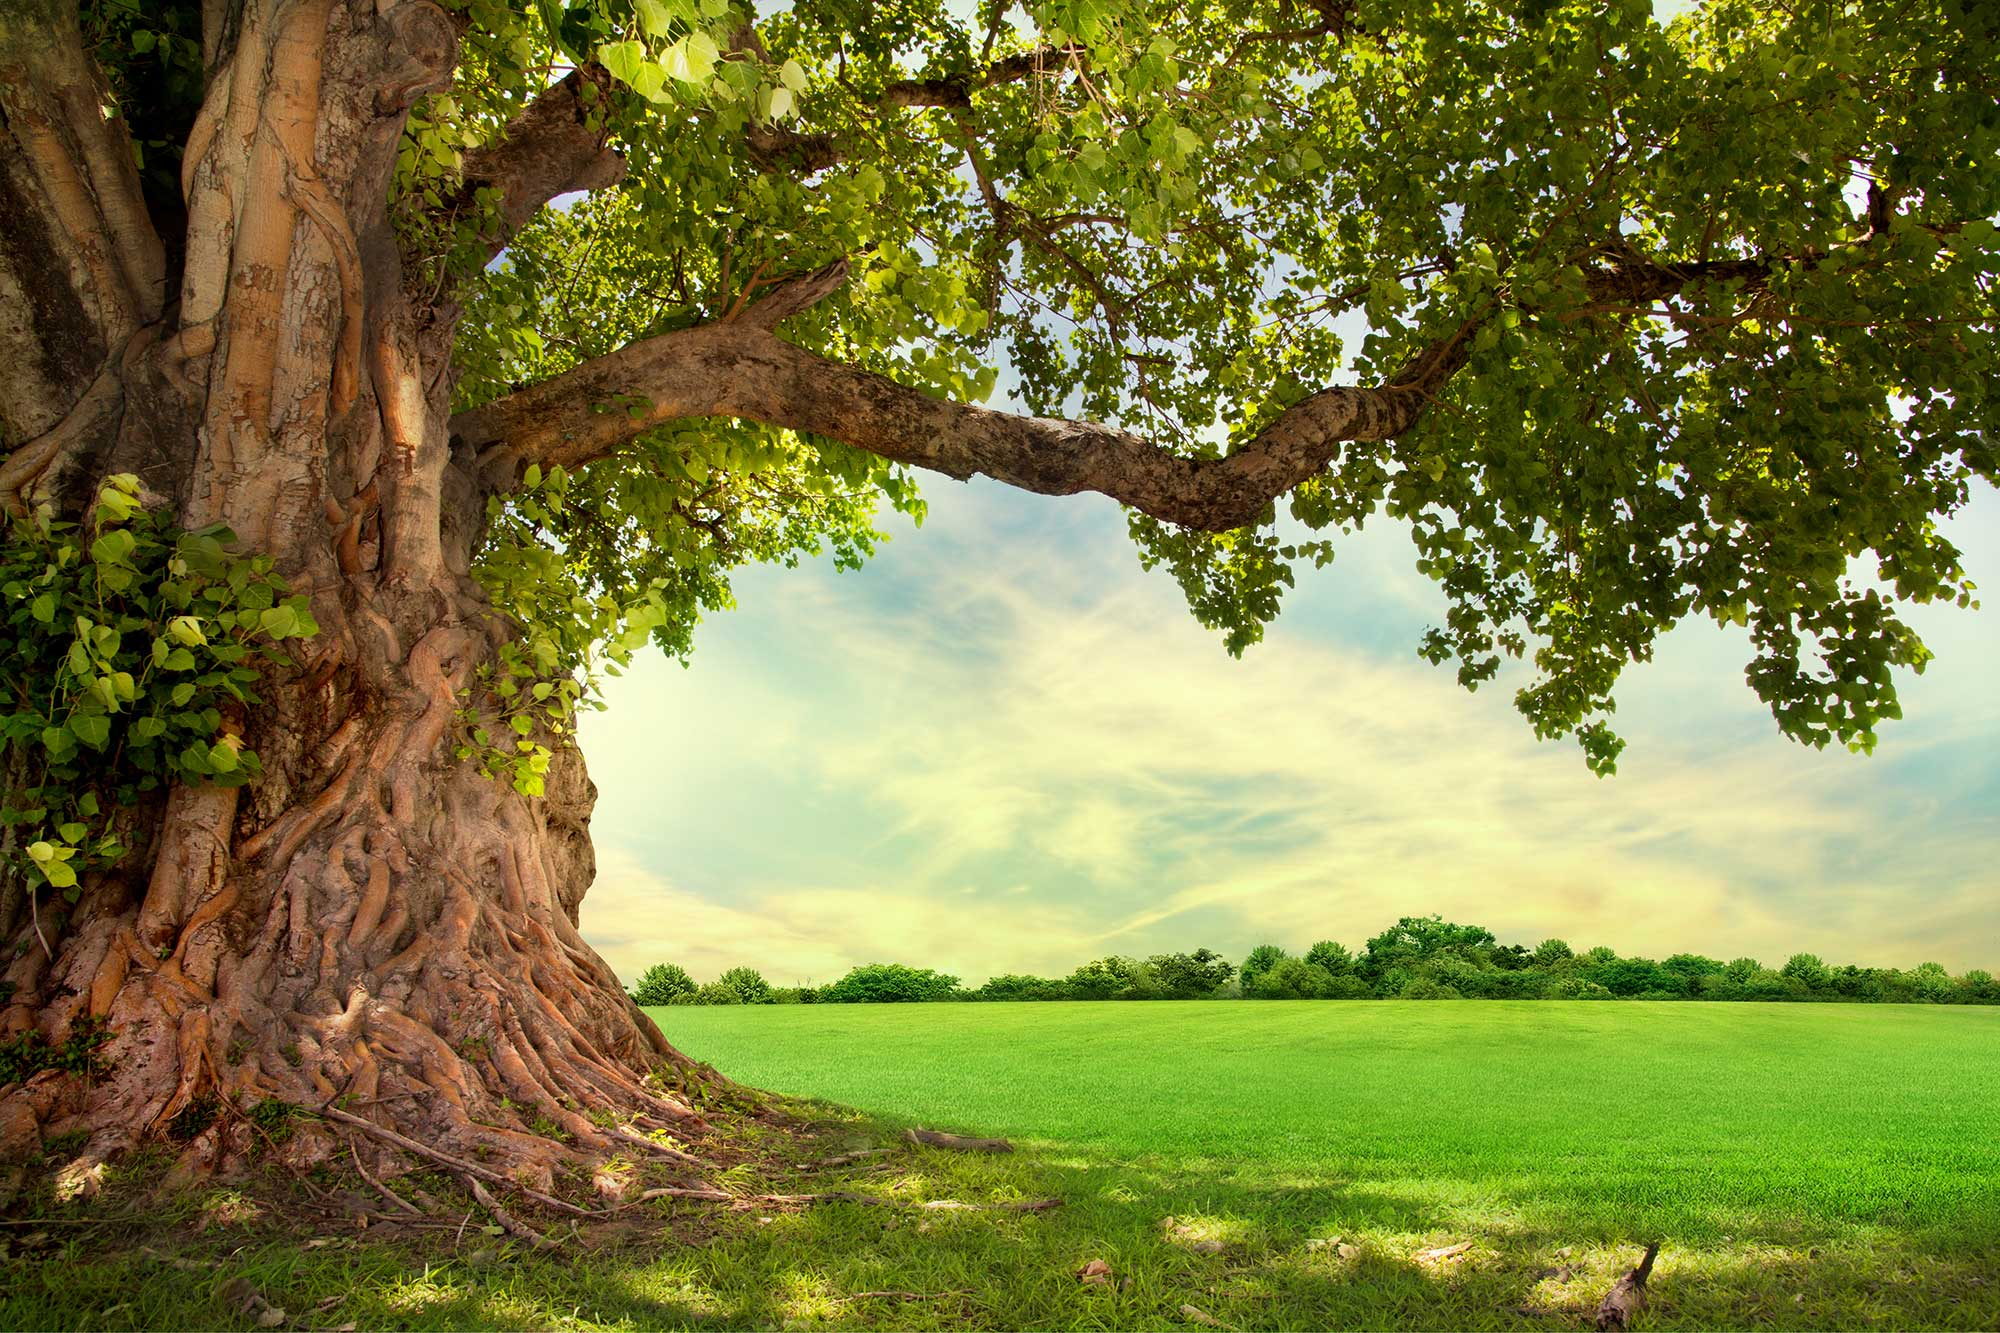 Healthy looking tree and meadow